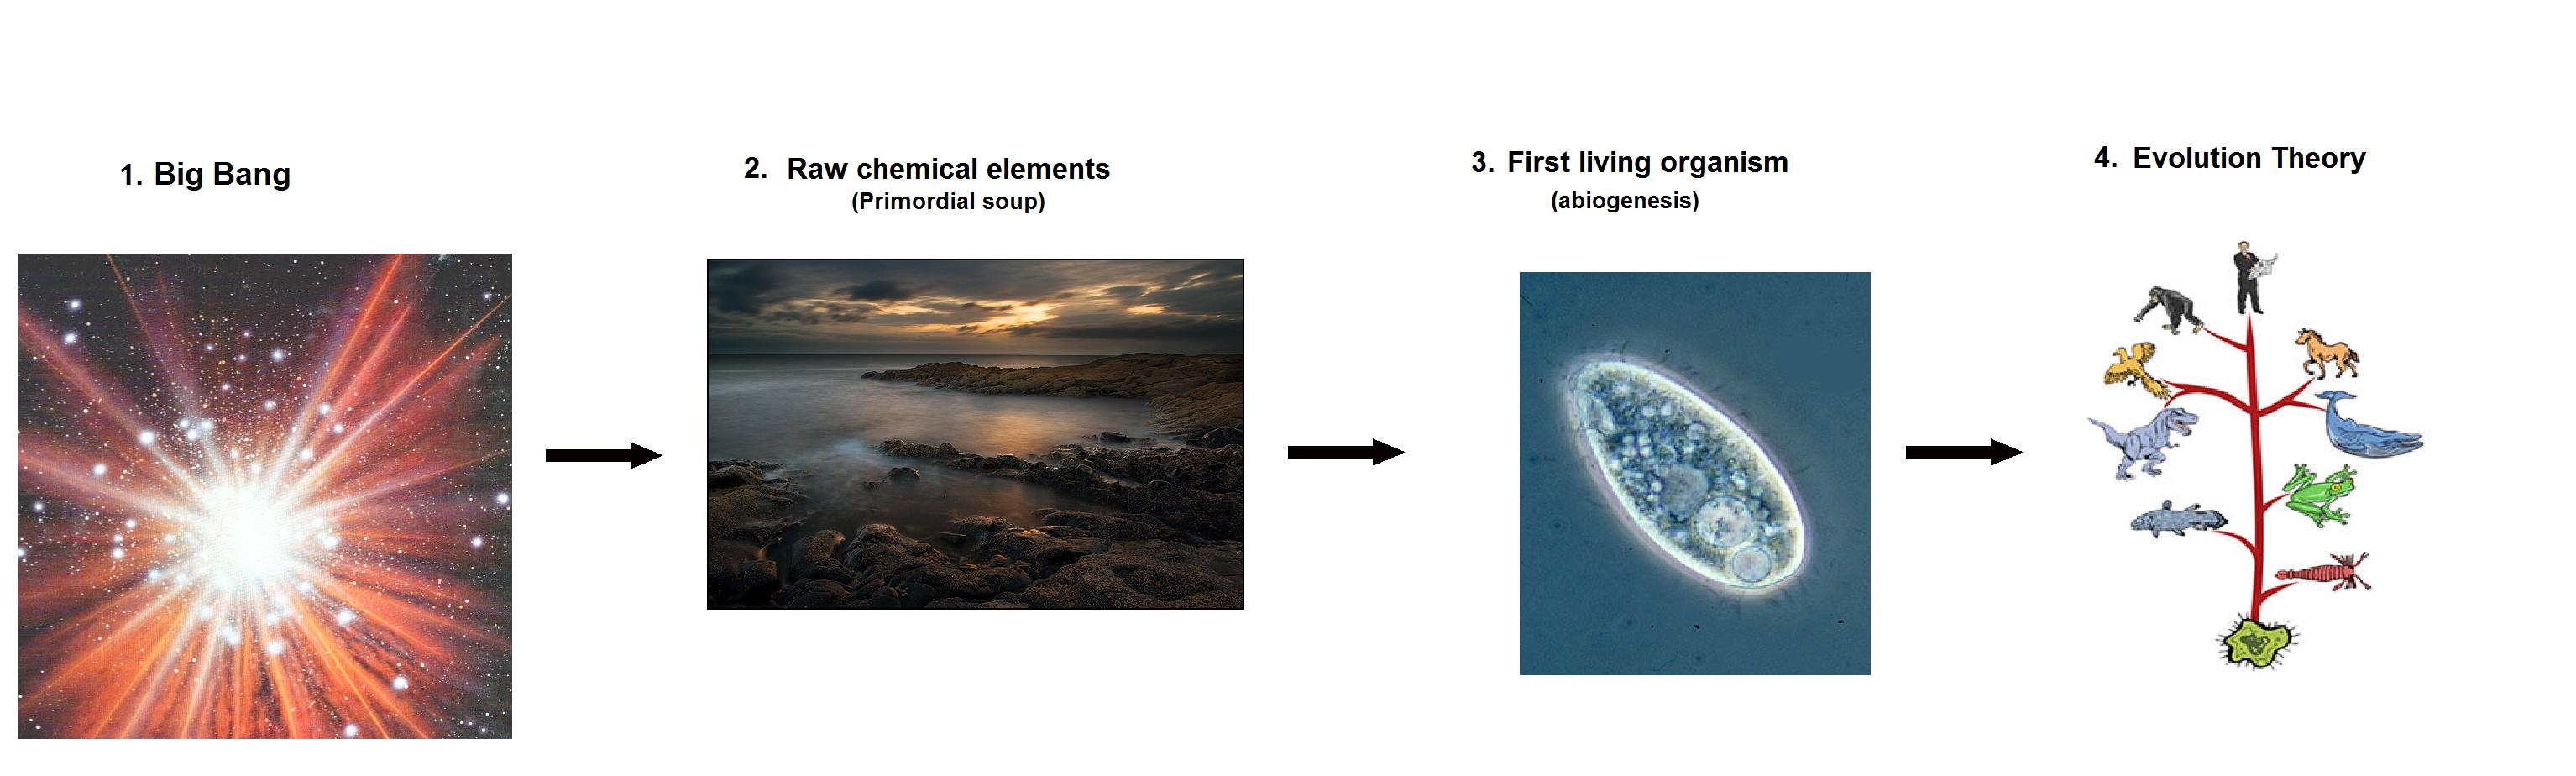 What are some recent discoveries in Abiogenesis?